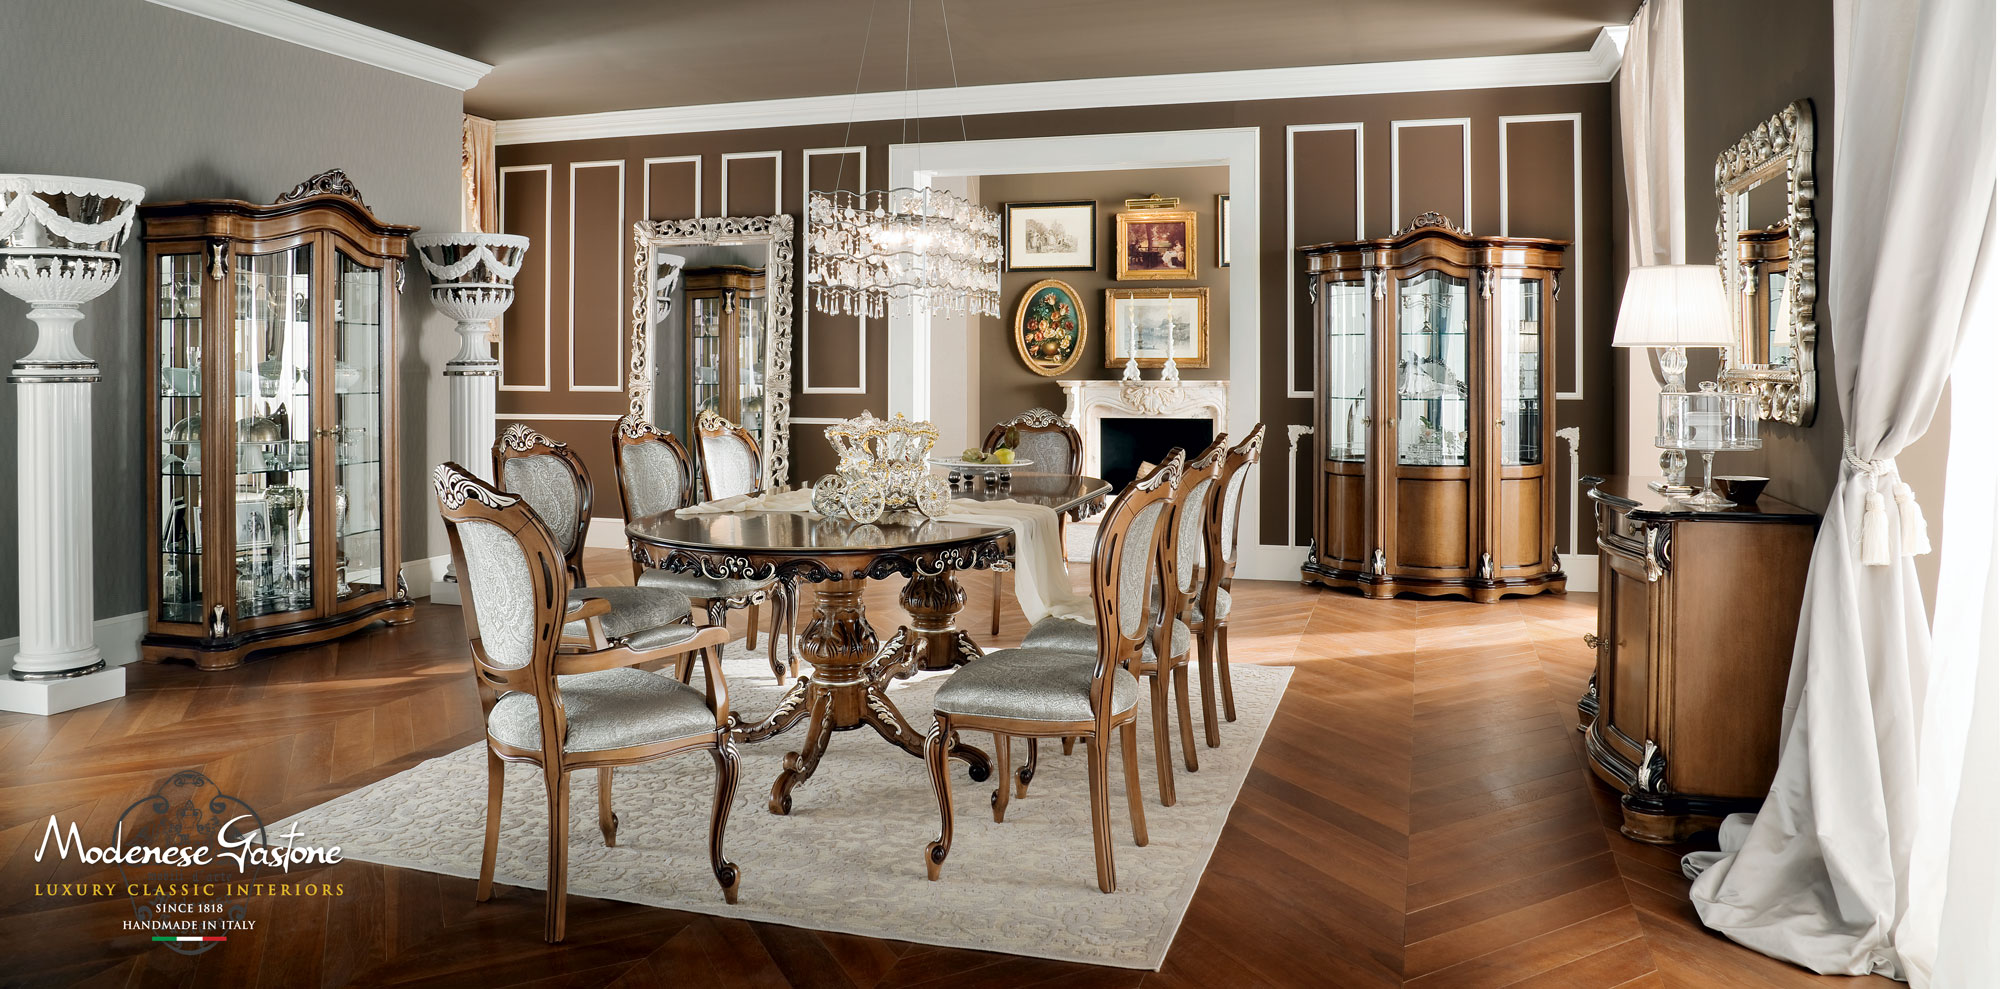 Italian-luxury-hardwood-dining-room-Bella-Vita-collection-Modenese-Gastone